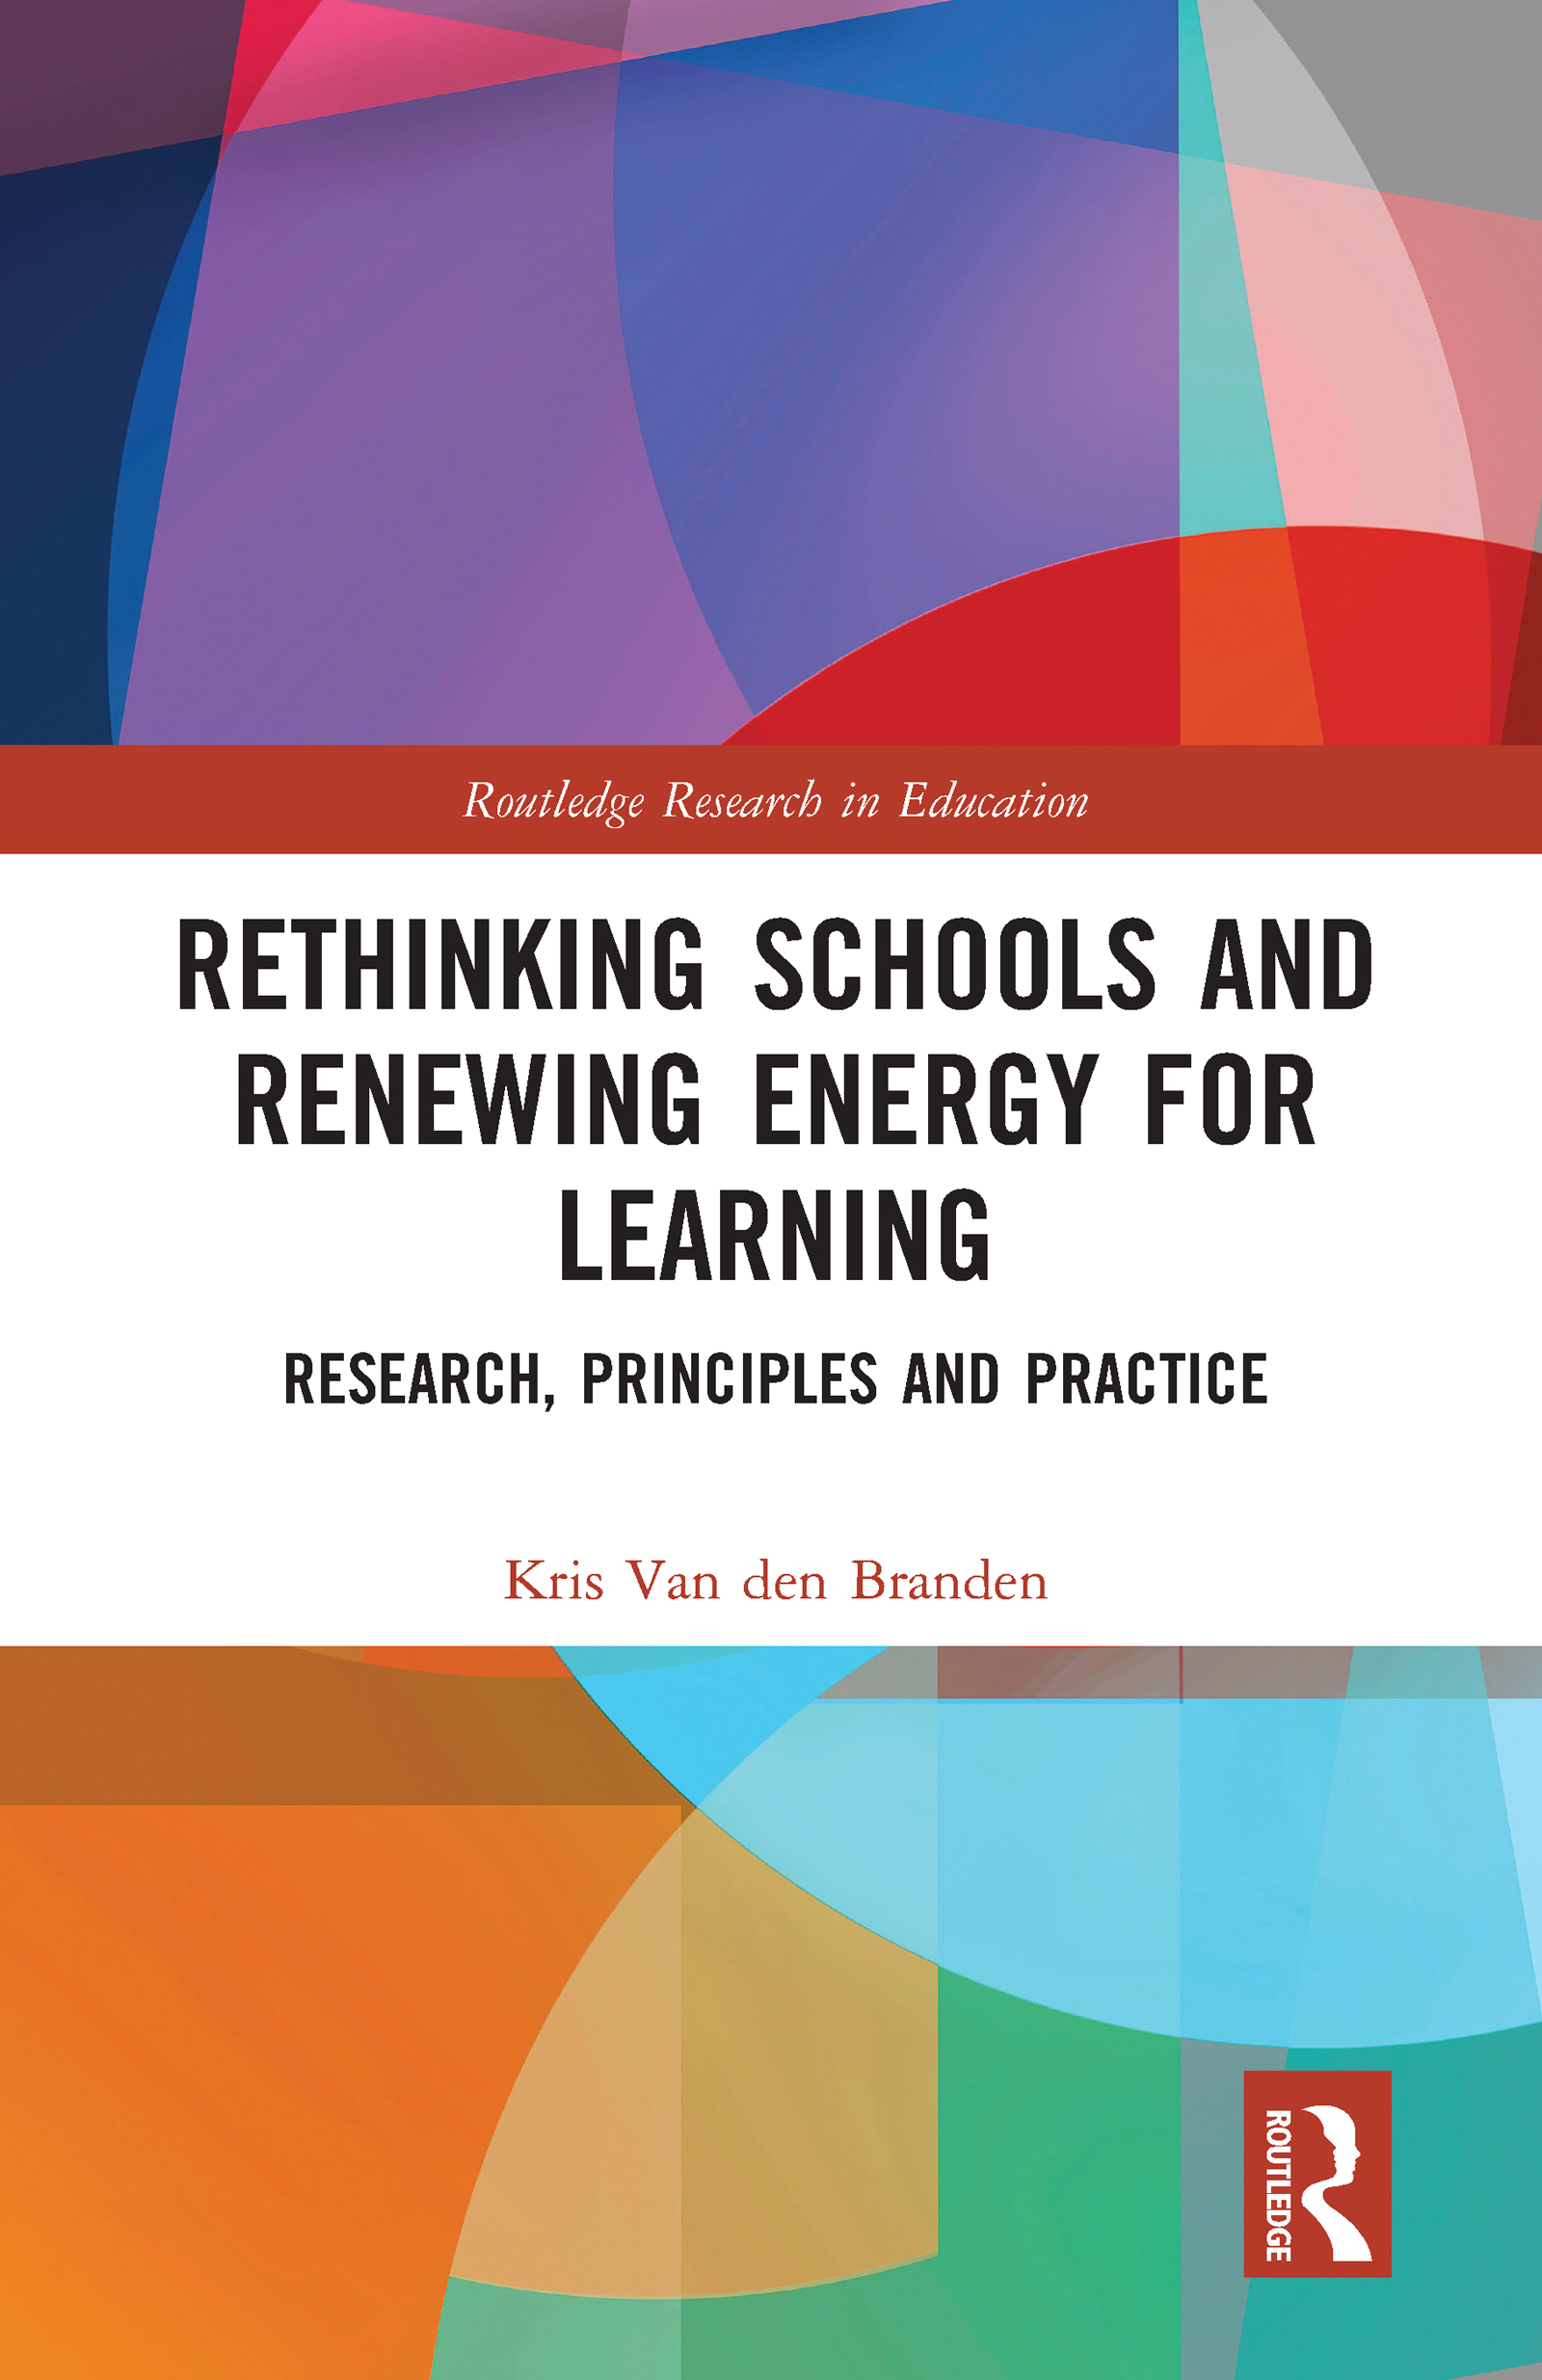 Rethinking Schools and Renewing Energy for Learning